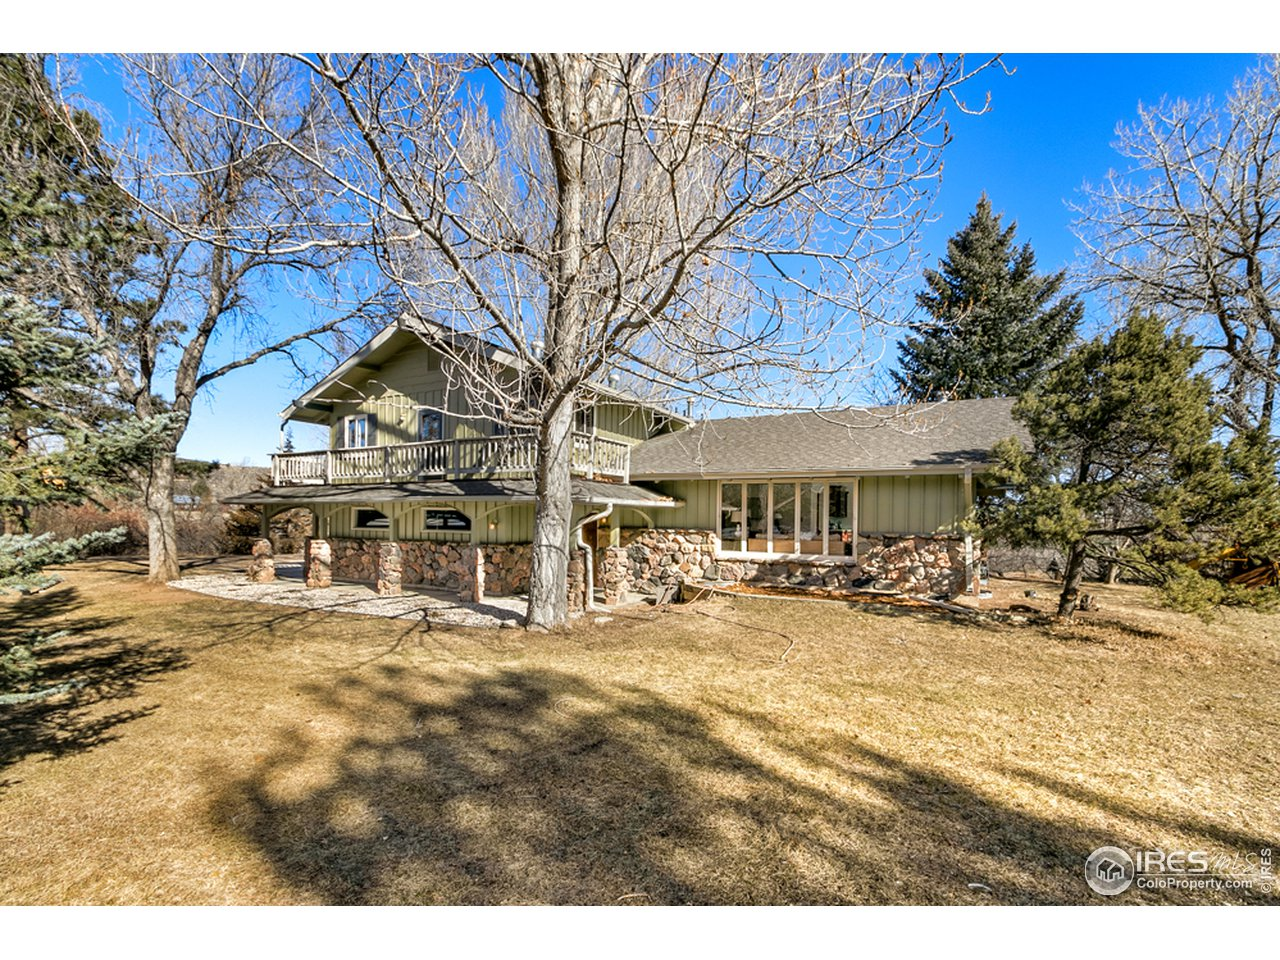 3900 Bingham Hill Rd, Fort Collins CO 80521